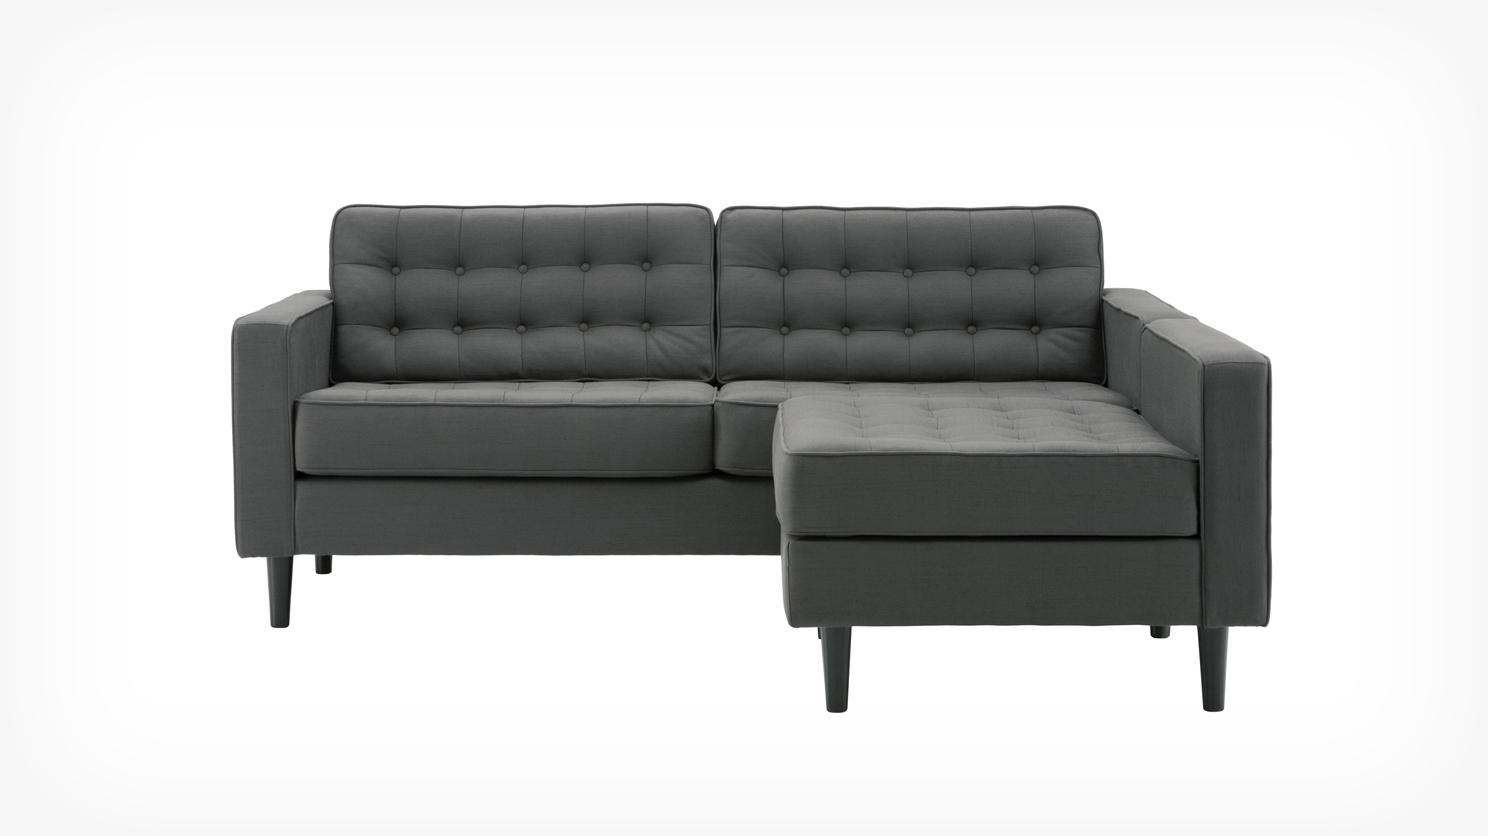 Eq3 | Living > Seating > Sectionals With Regard To Small 2 Piece Sectional (View 5 of 20)